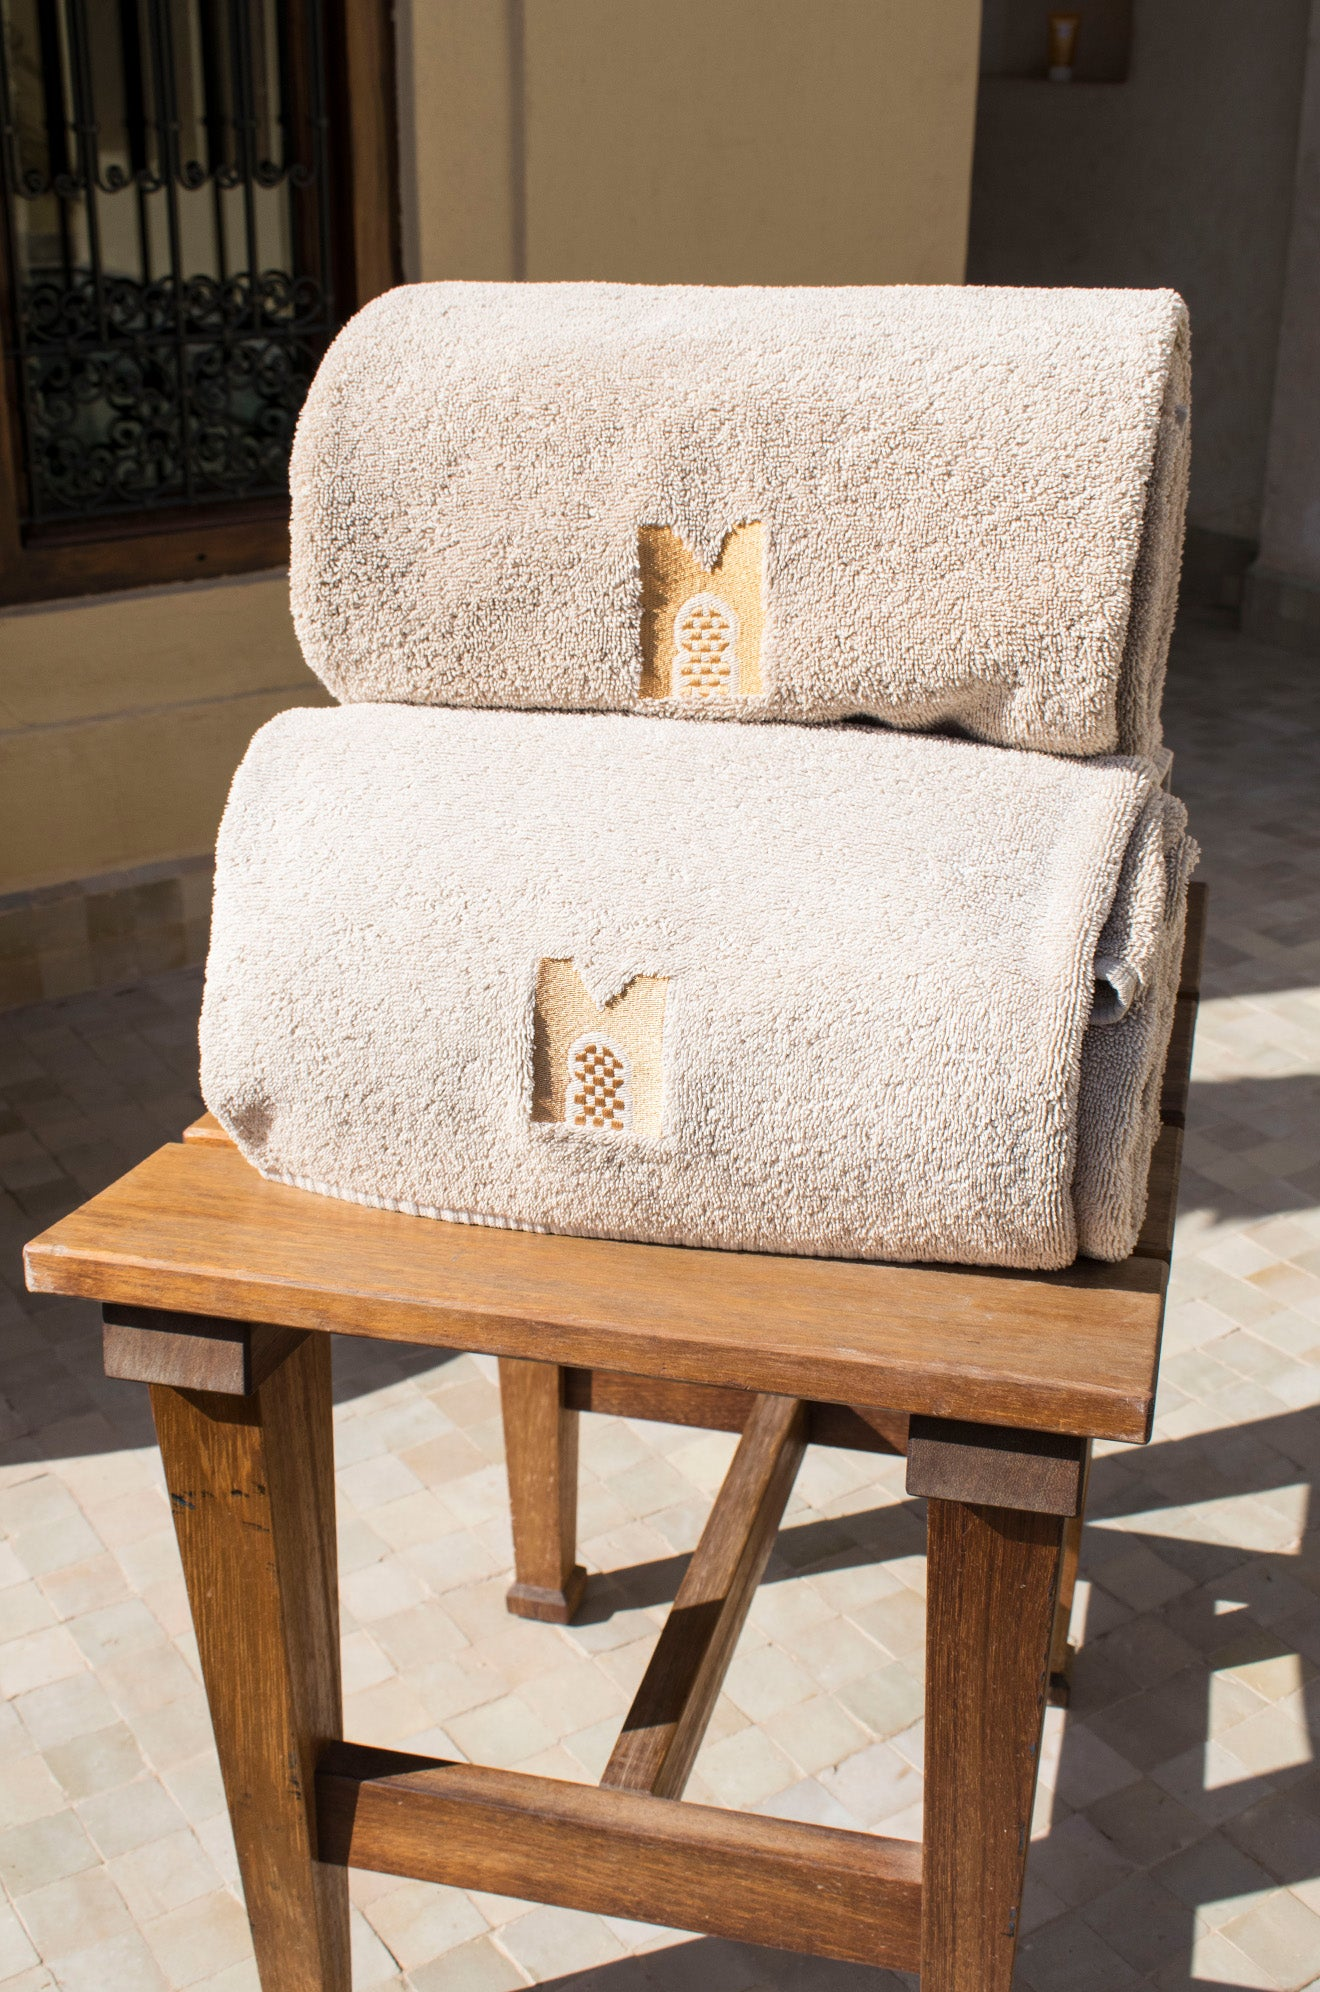 Royal Mansour logo towels